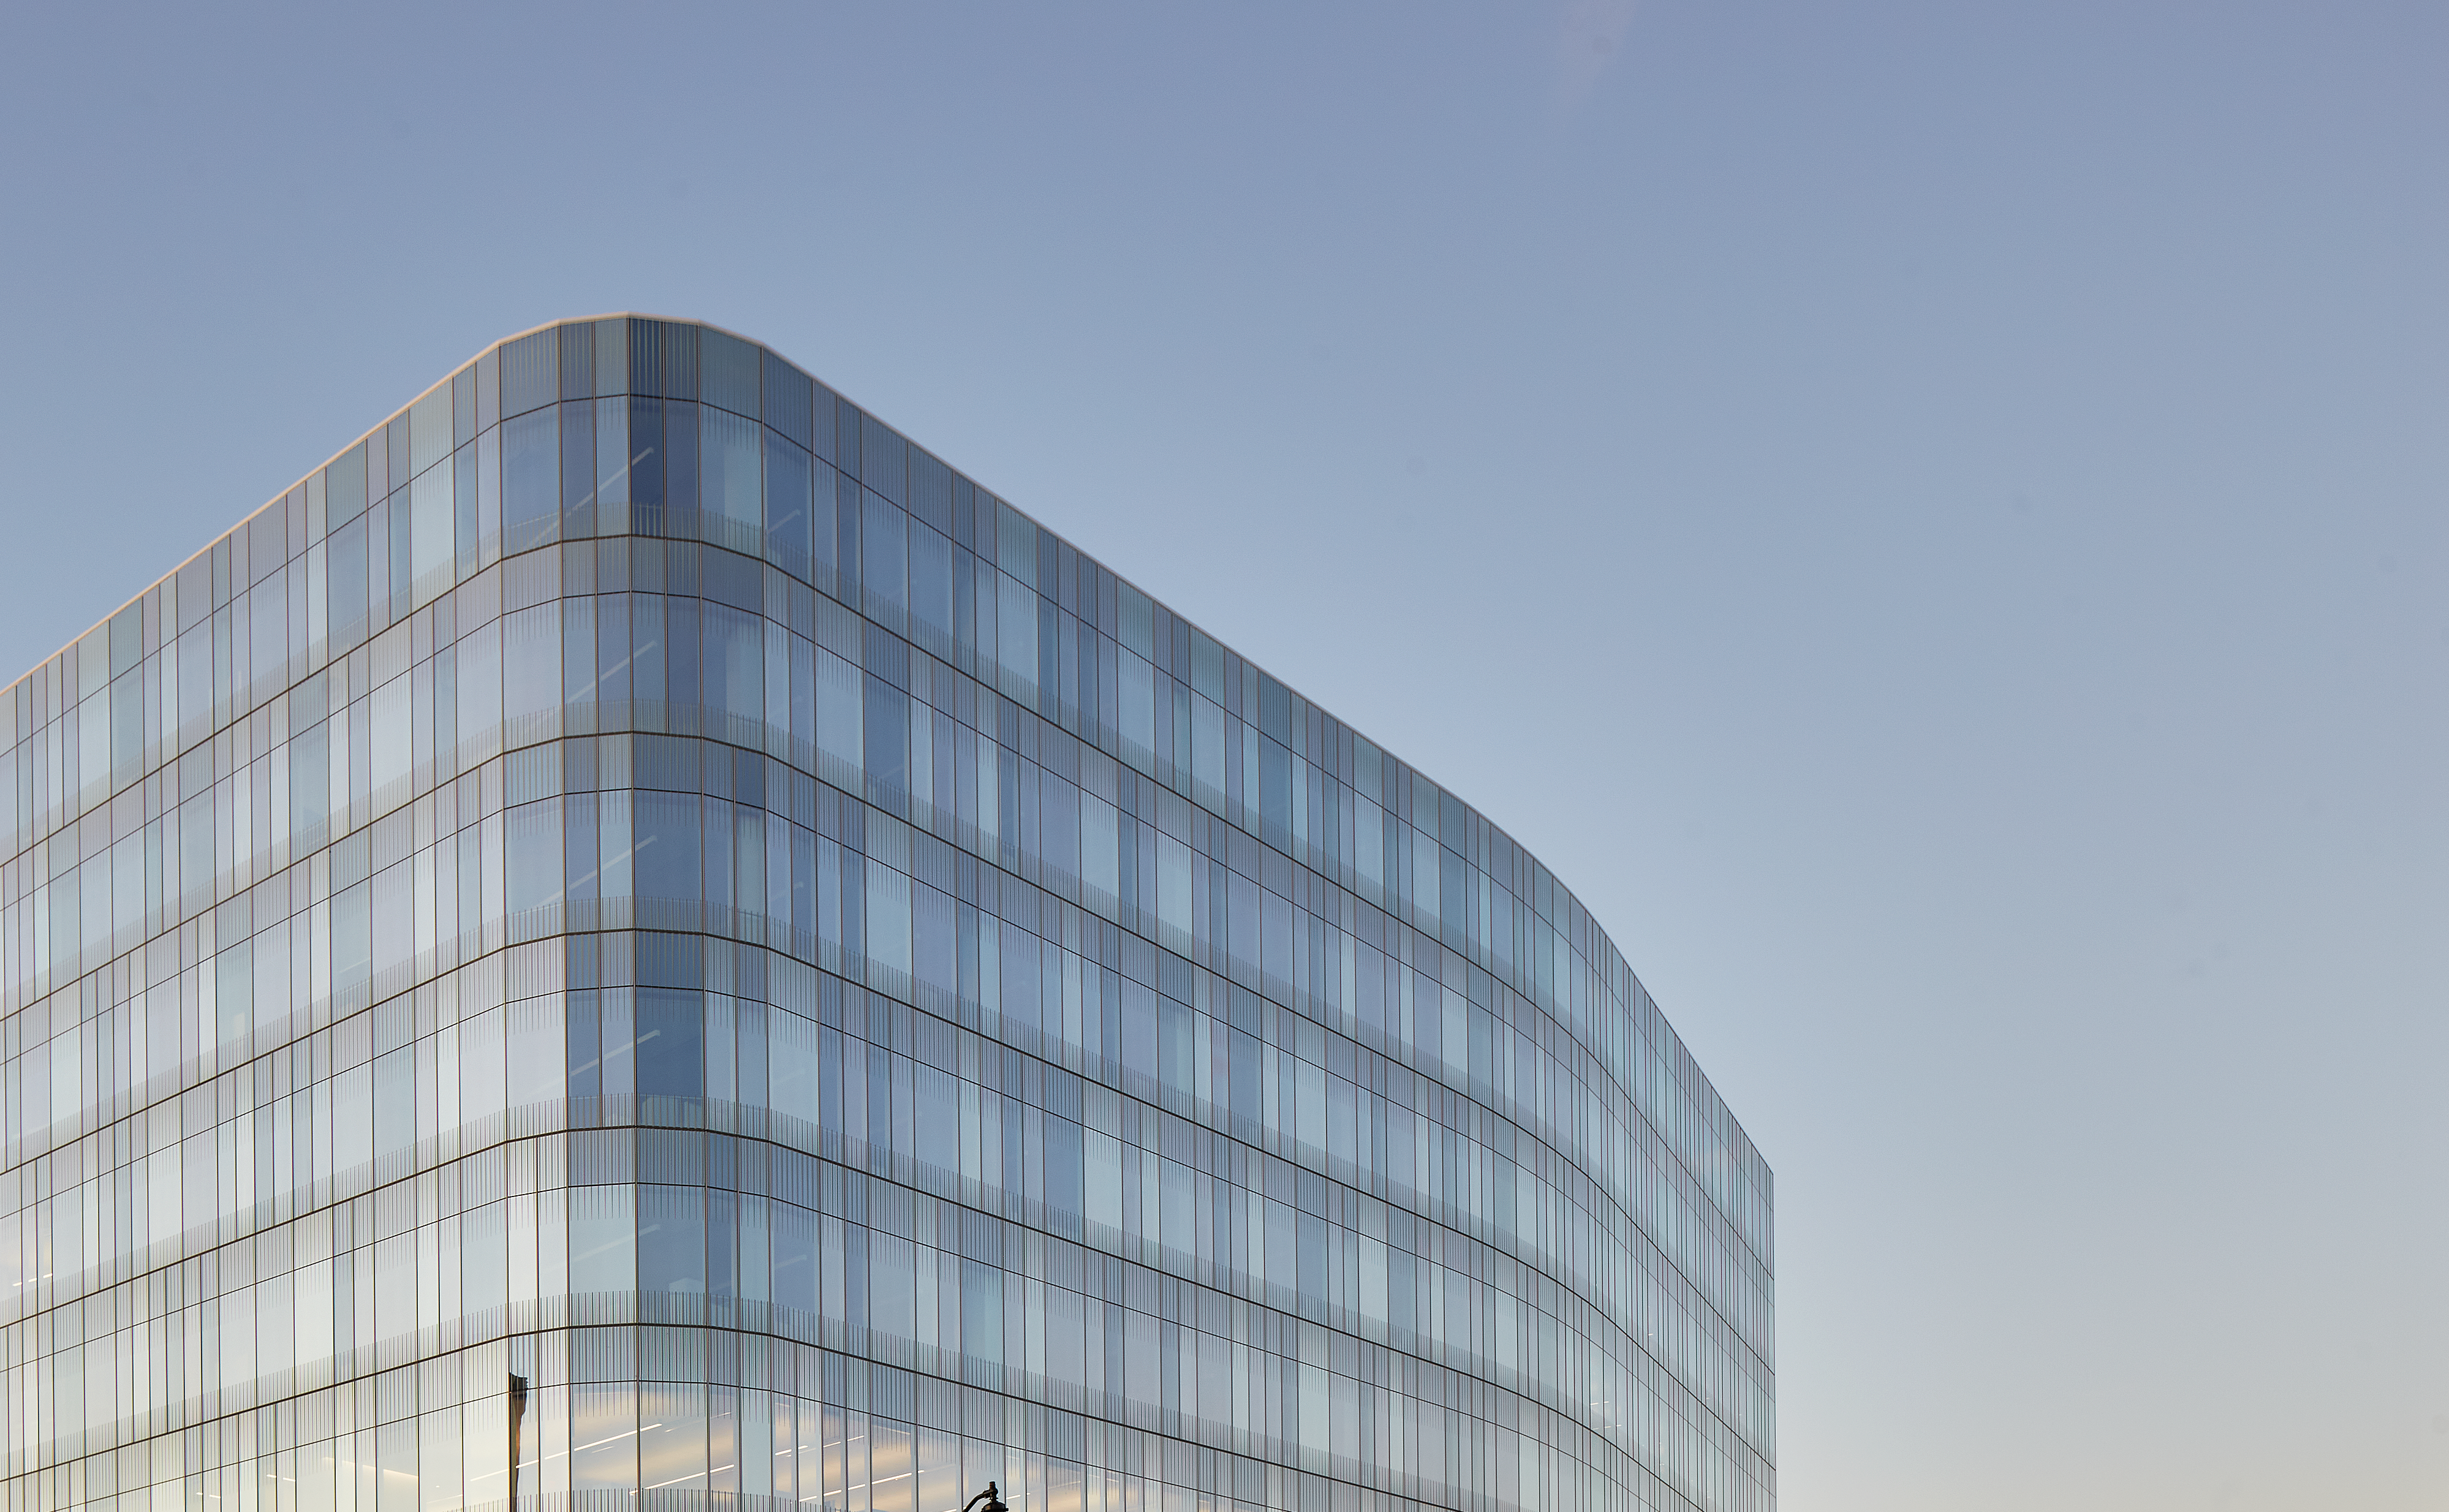 Taxation Building - Viracon delivers a customized architectural glass solutions